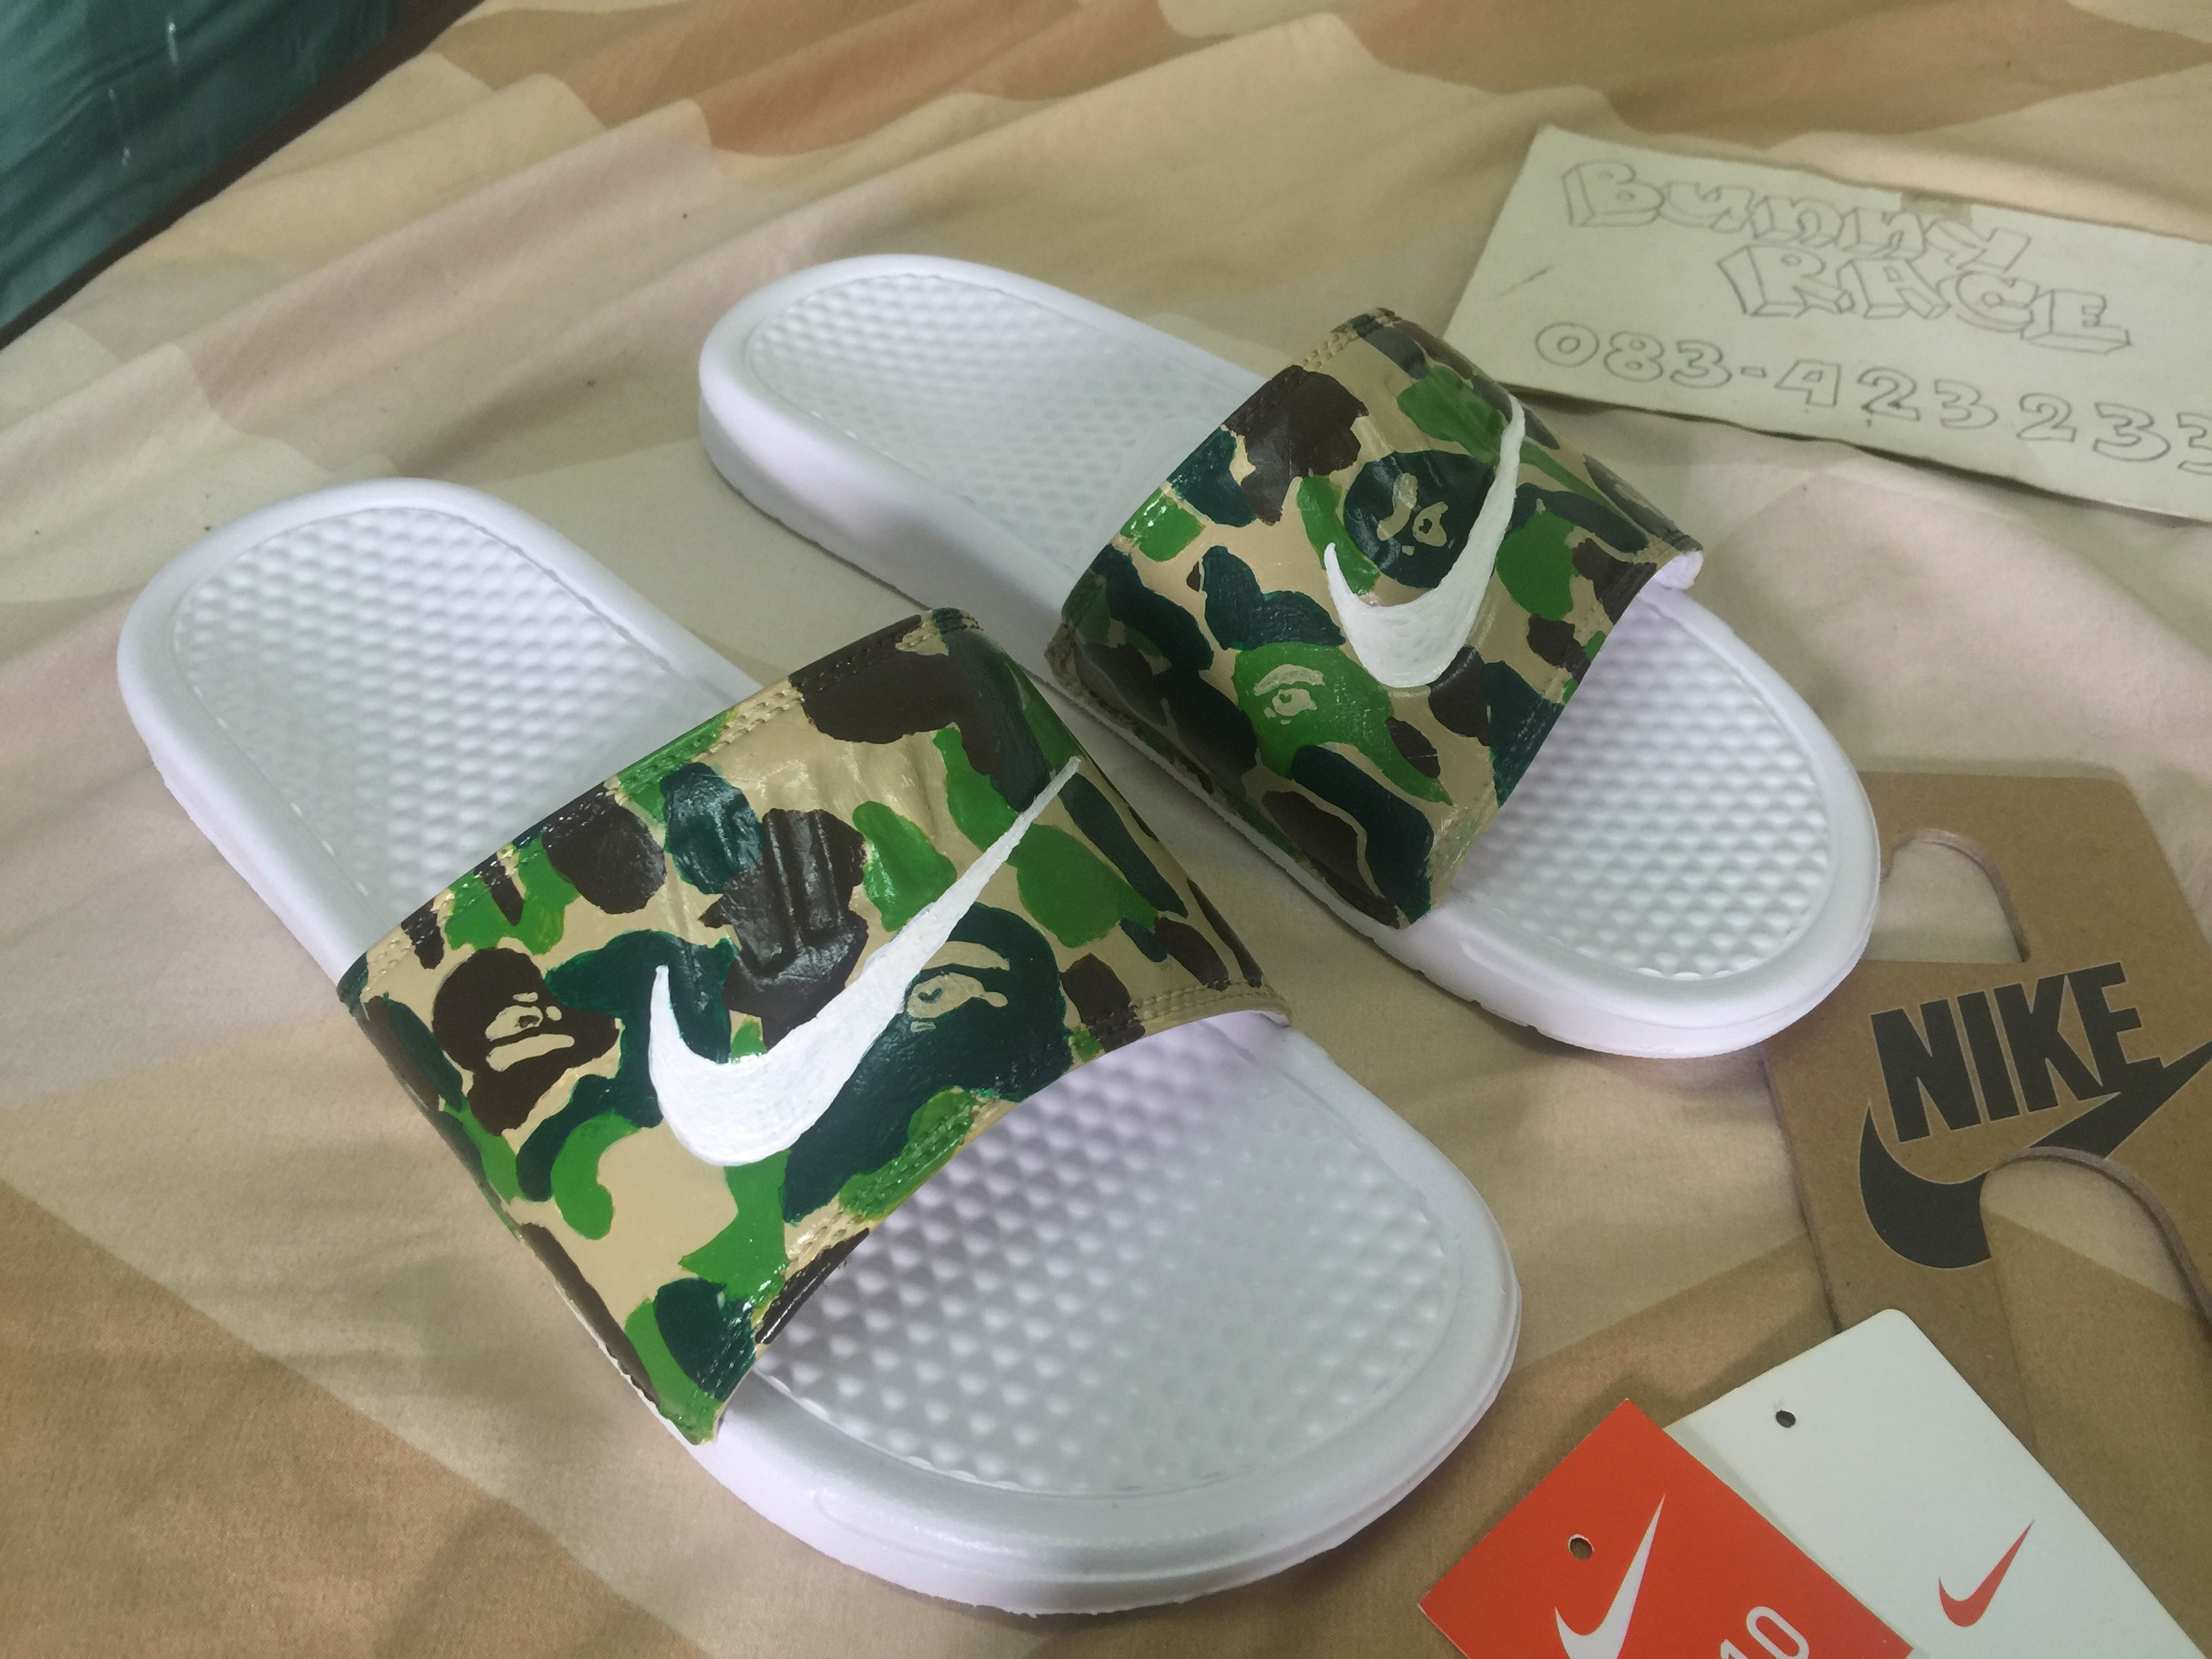 2f3b43420c61 good item nike slides custom bape camo